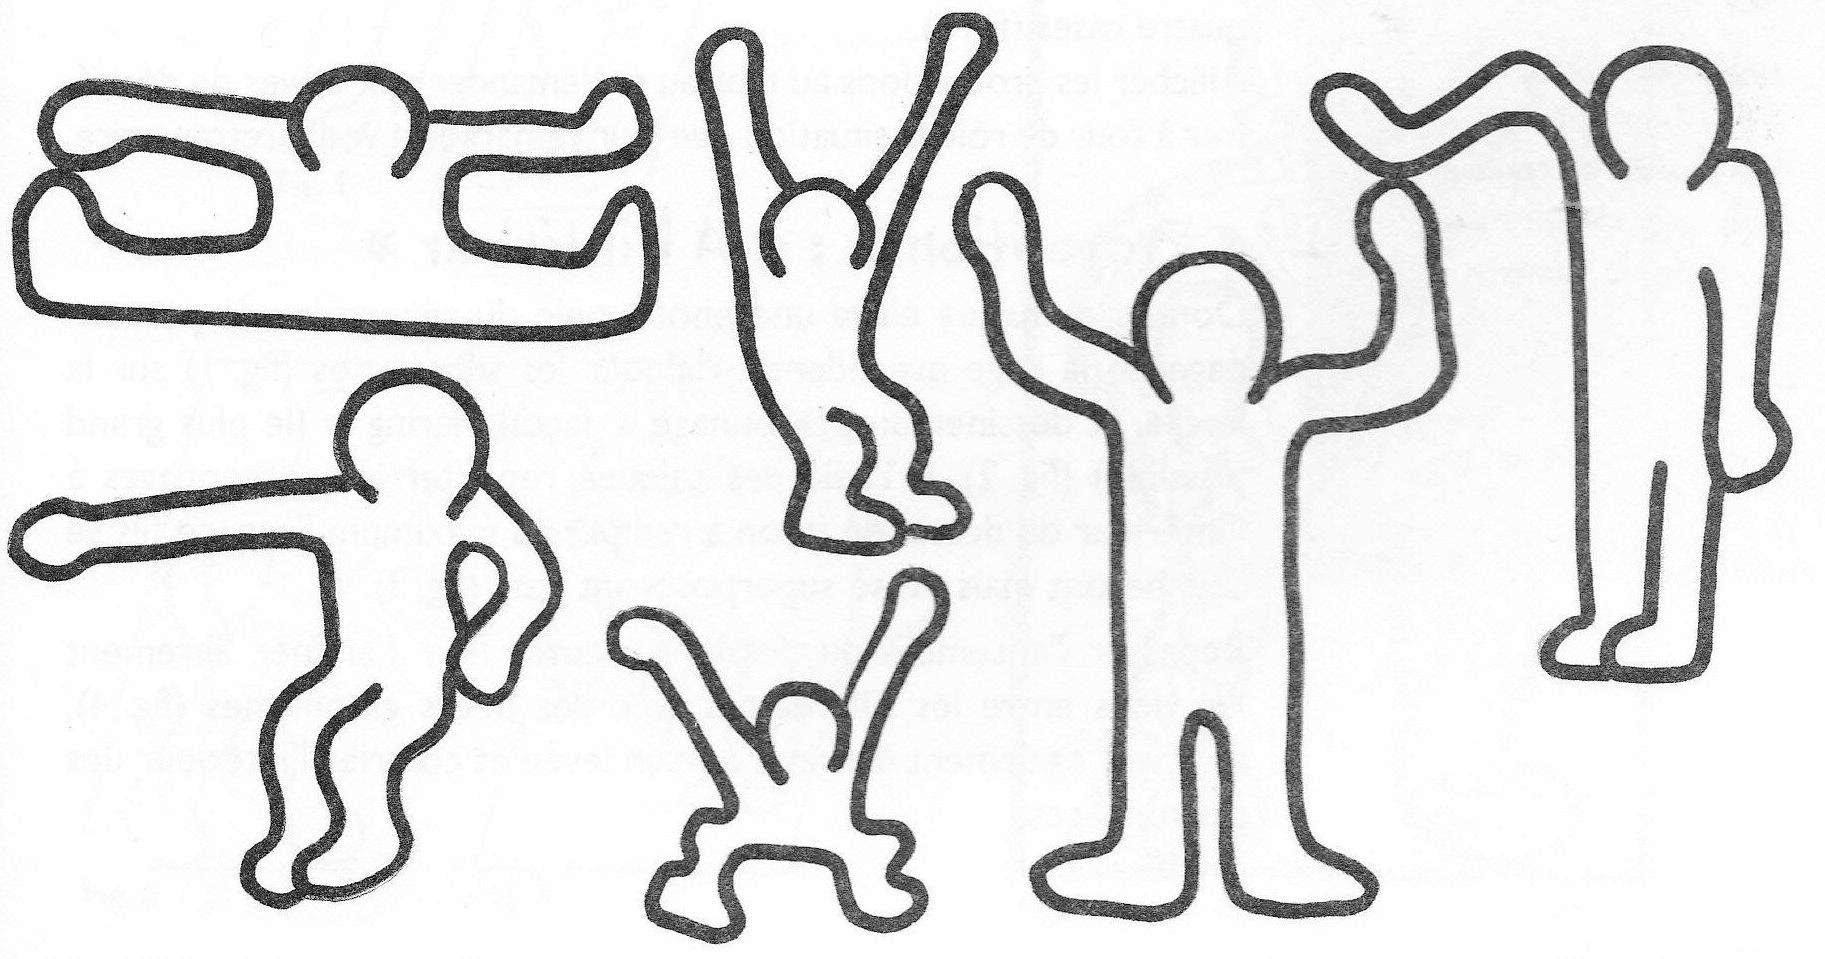 Loup keith haring coloriage maternelle 30000 collections de pages colorier imprimables - Silhouette a colorier ...